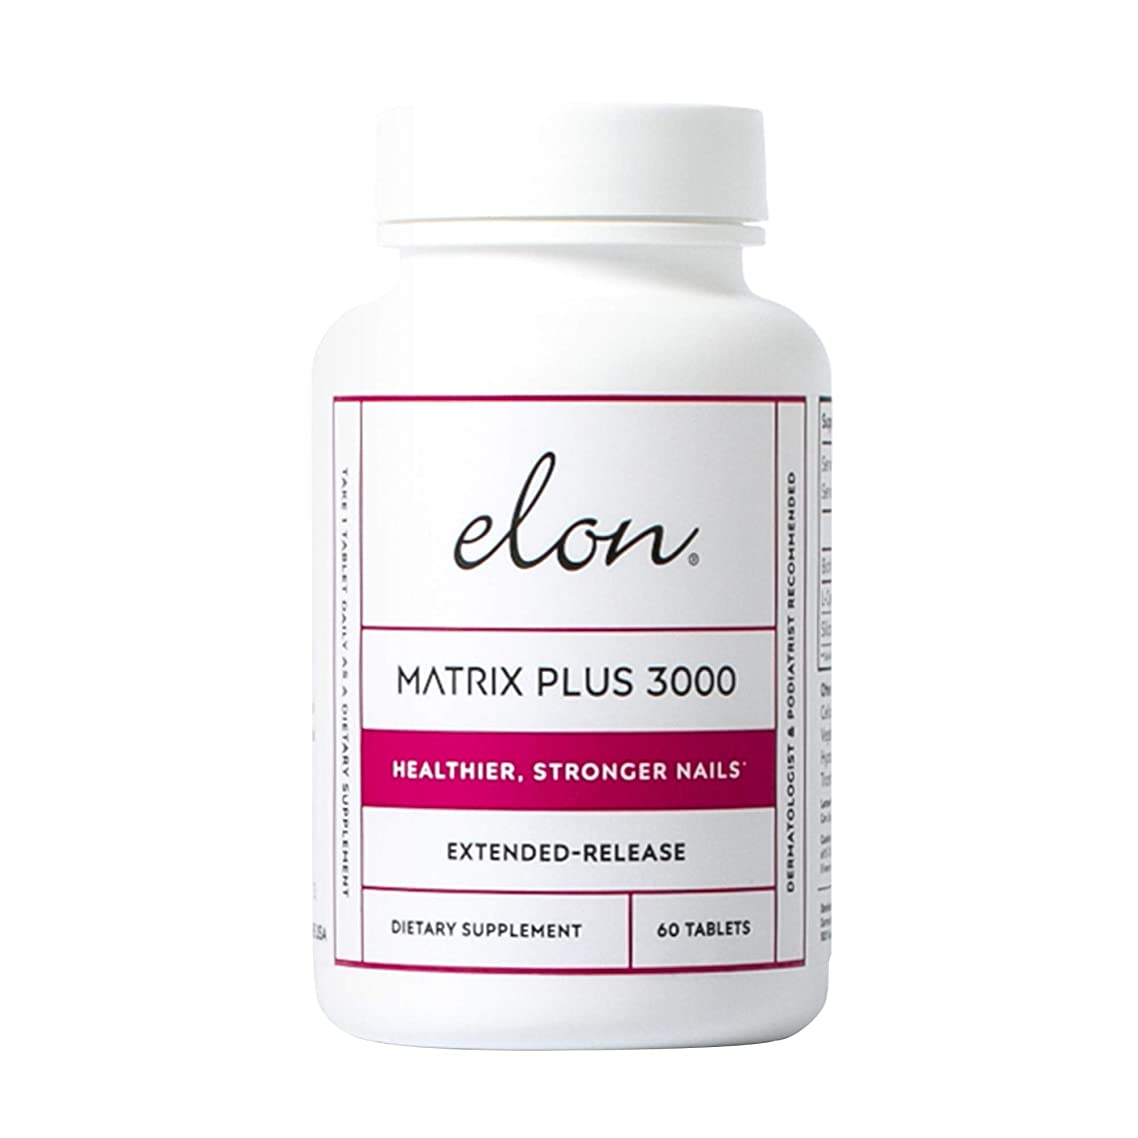 ELON Matrix Plus 3000 for Stronger and Healthier Nails – 60 Tablets | Professionally Formulated to Nourish, Enhance & Strengthen Nails | Designed with Biotin, L-Cysteine & Silicon Dioxide